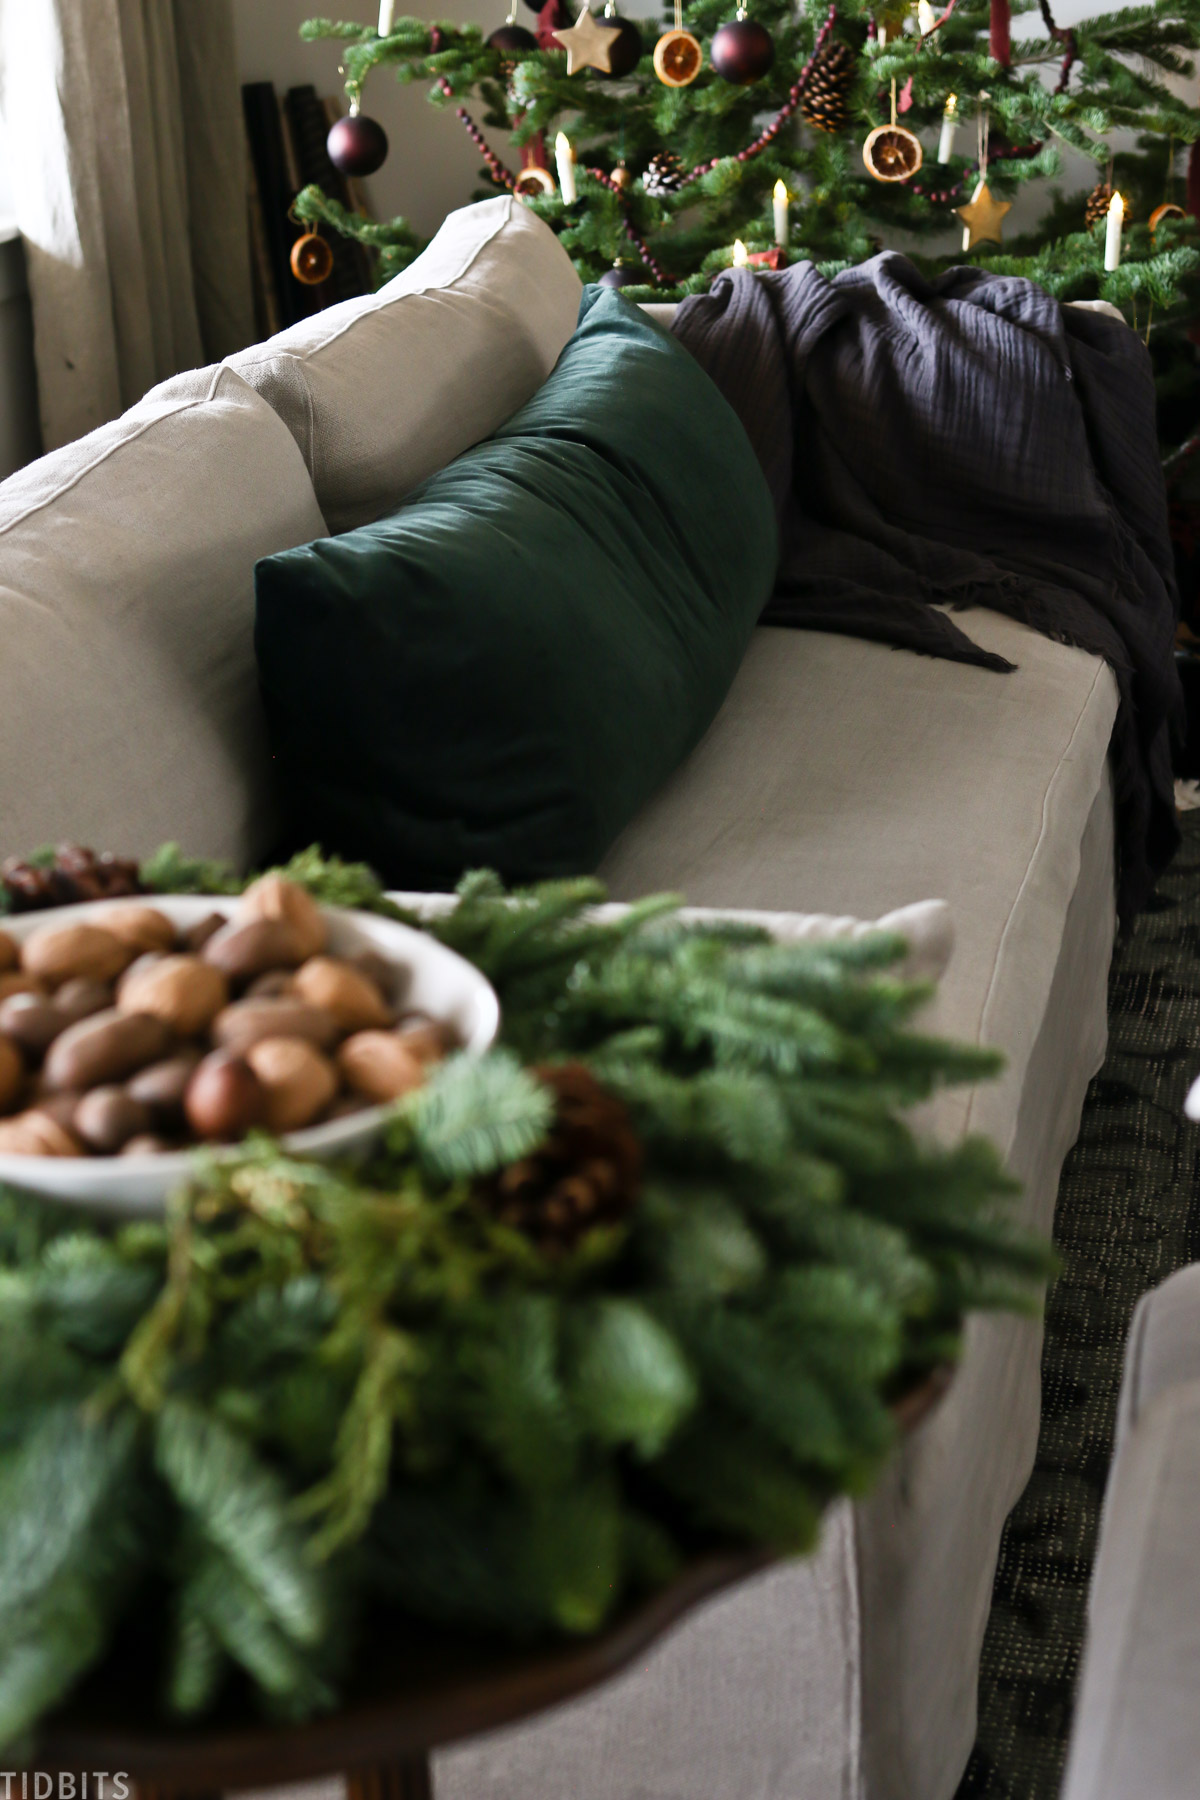 centerpiece that looks like a wreath is placed on side table next to couch